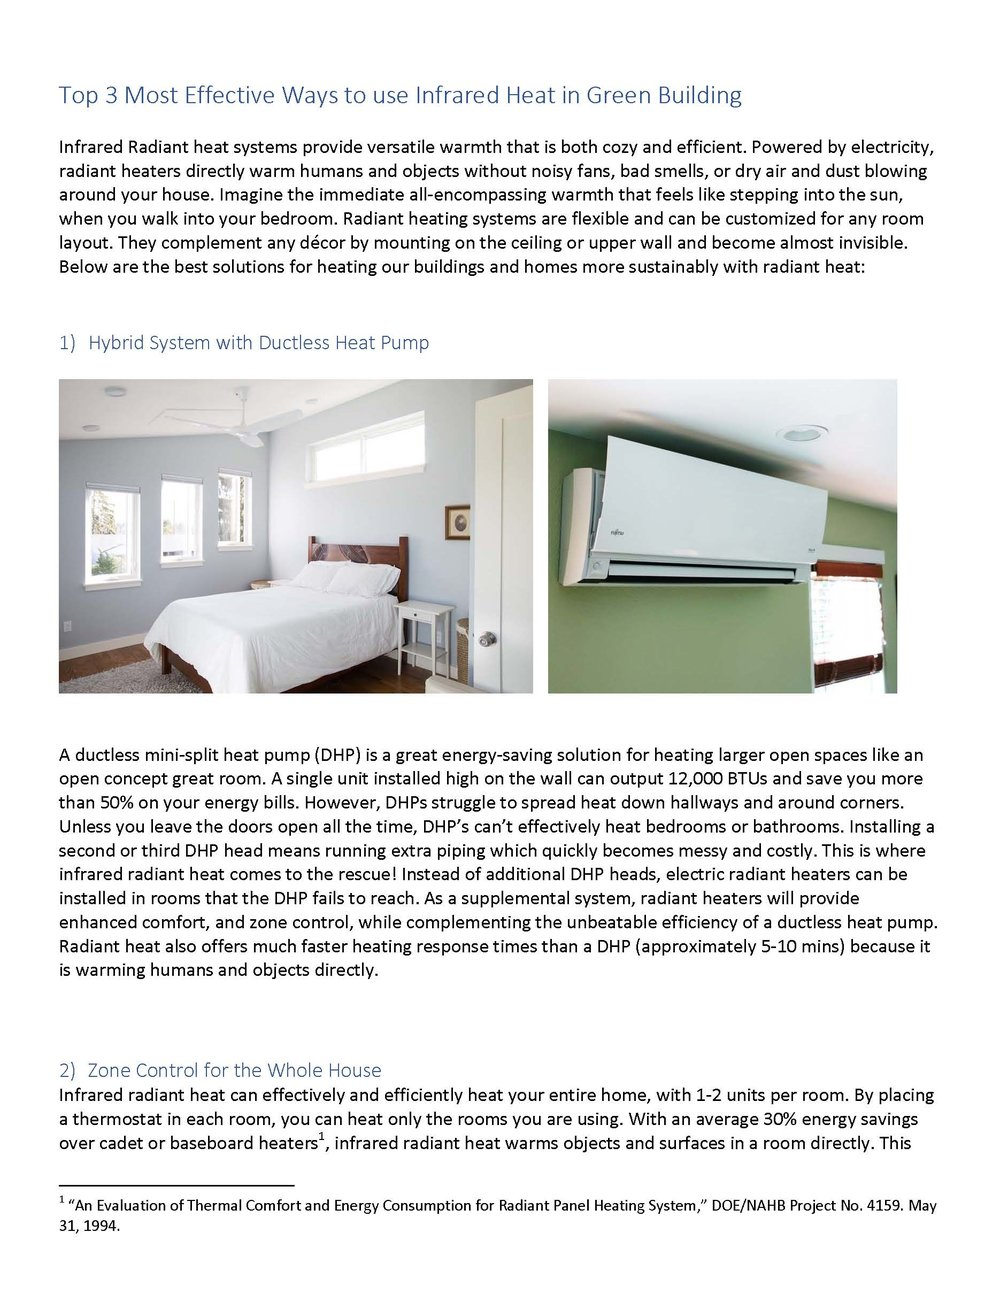 Top 3 Most Effective Ways to use Infrared Heat in Green Building_Page_1.jpg